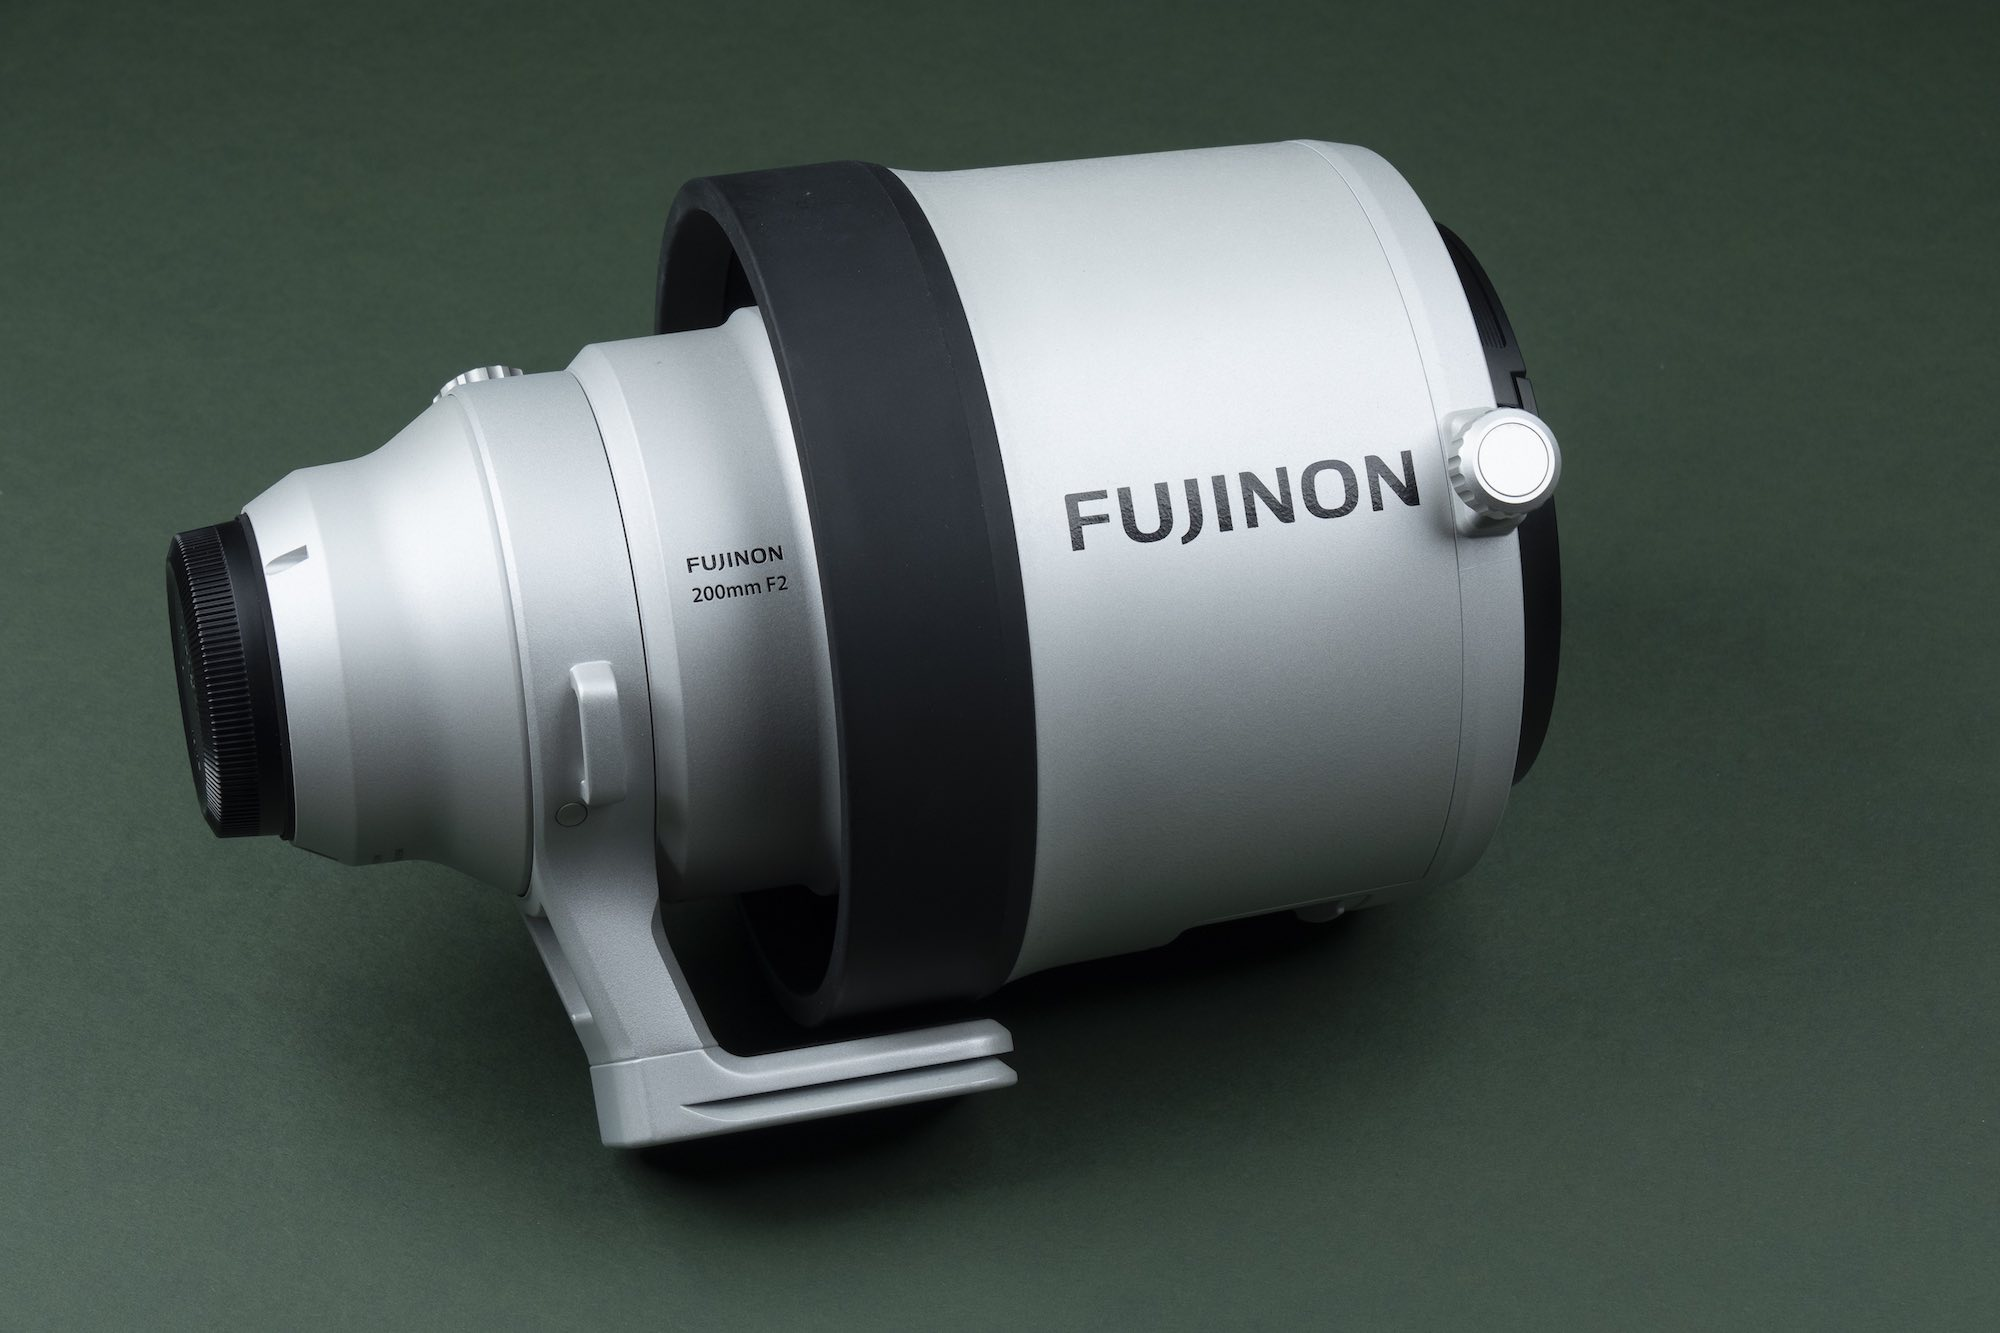 FUJINON XF 200mm f2 OIS WR Lens / Review